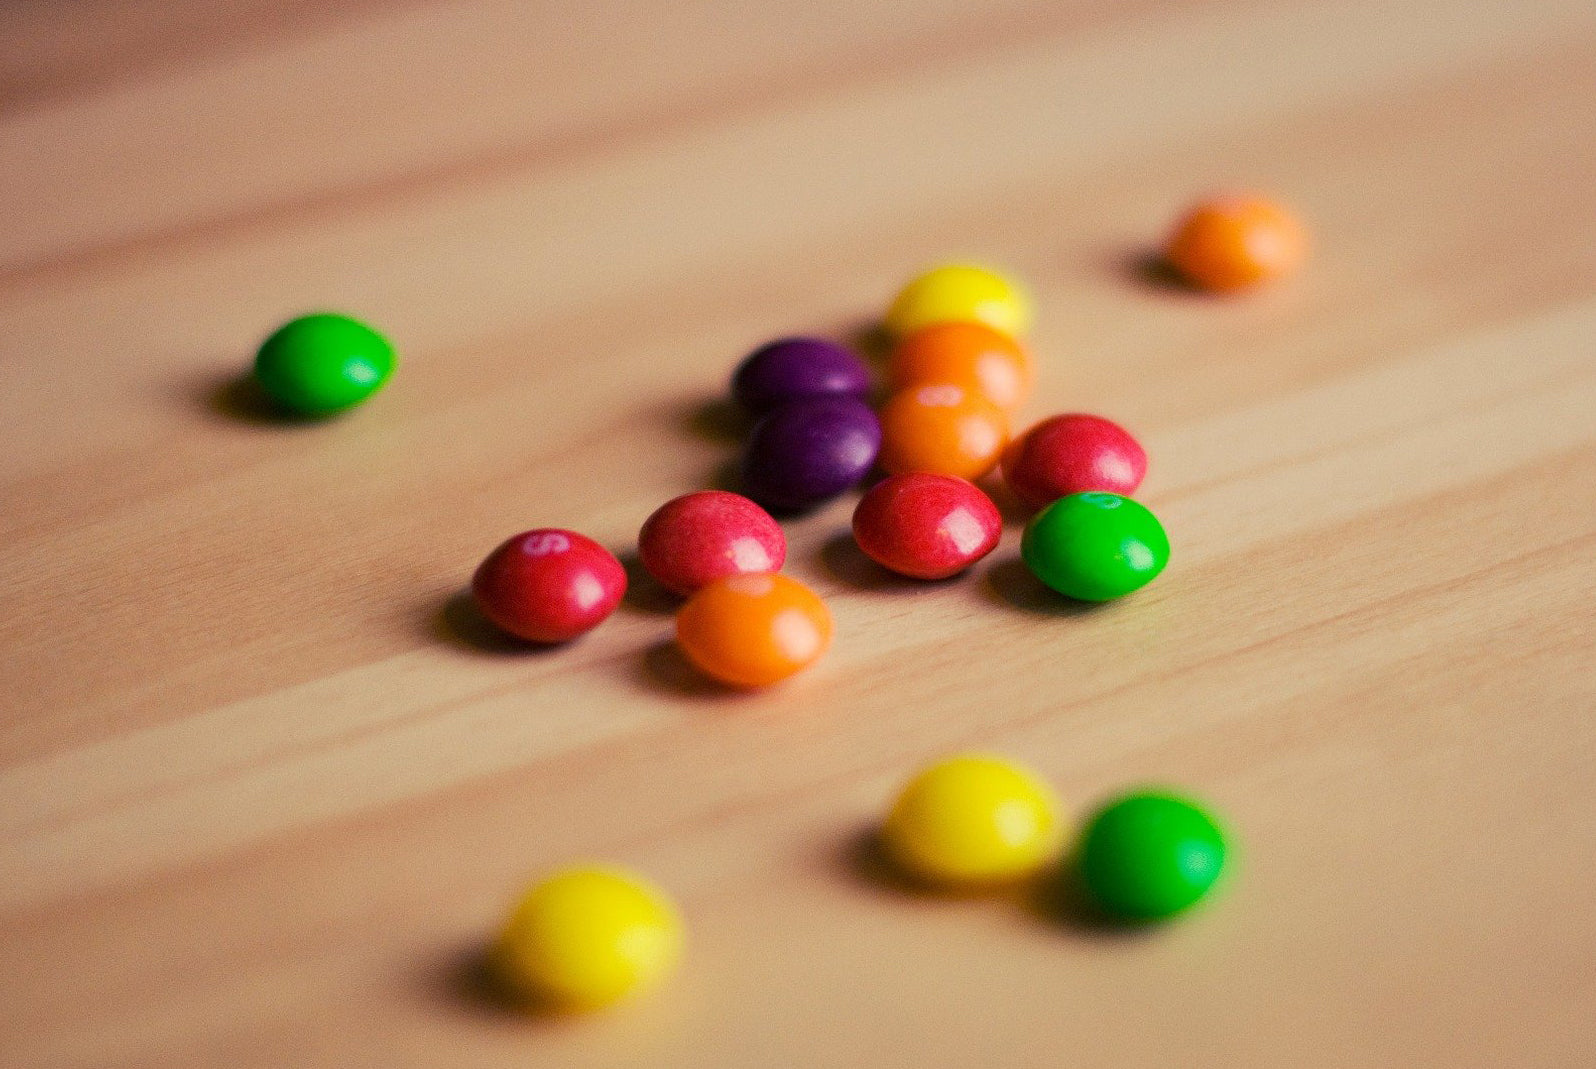 a few skittles candies in a variety of colors spread out across a light wooden surface